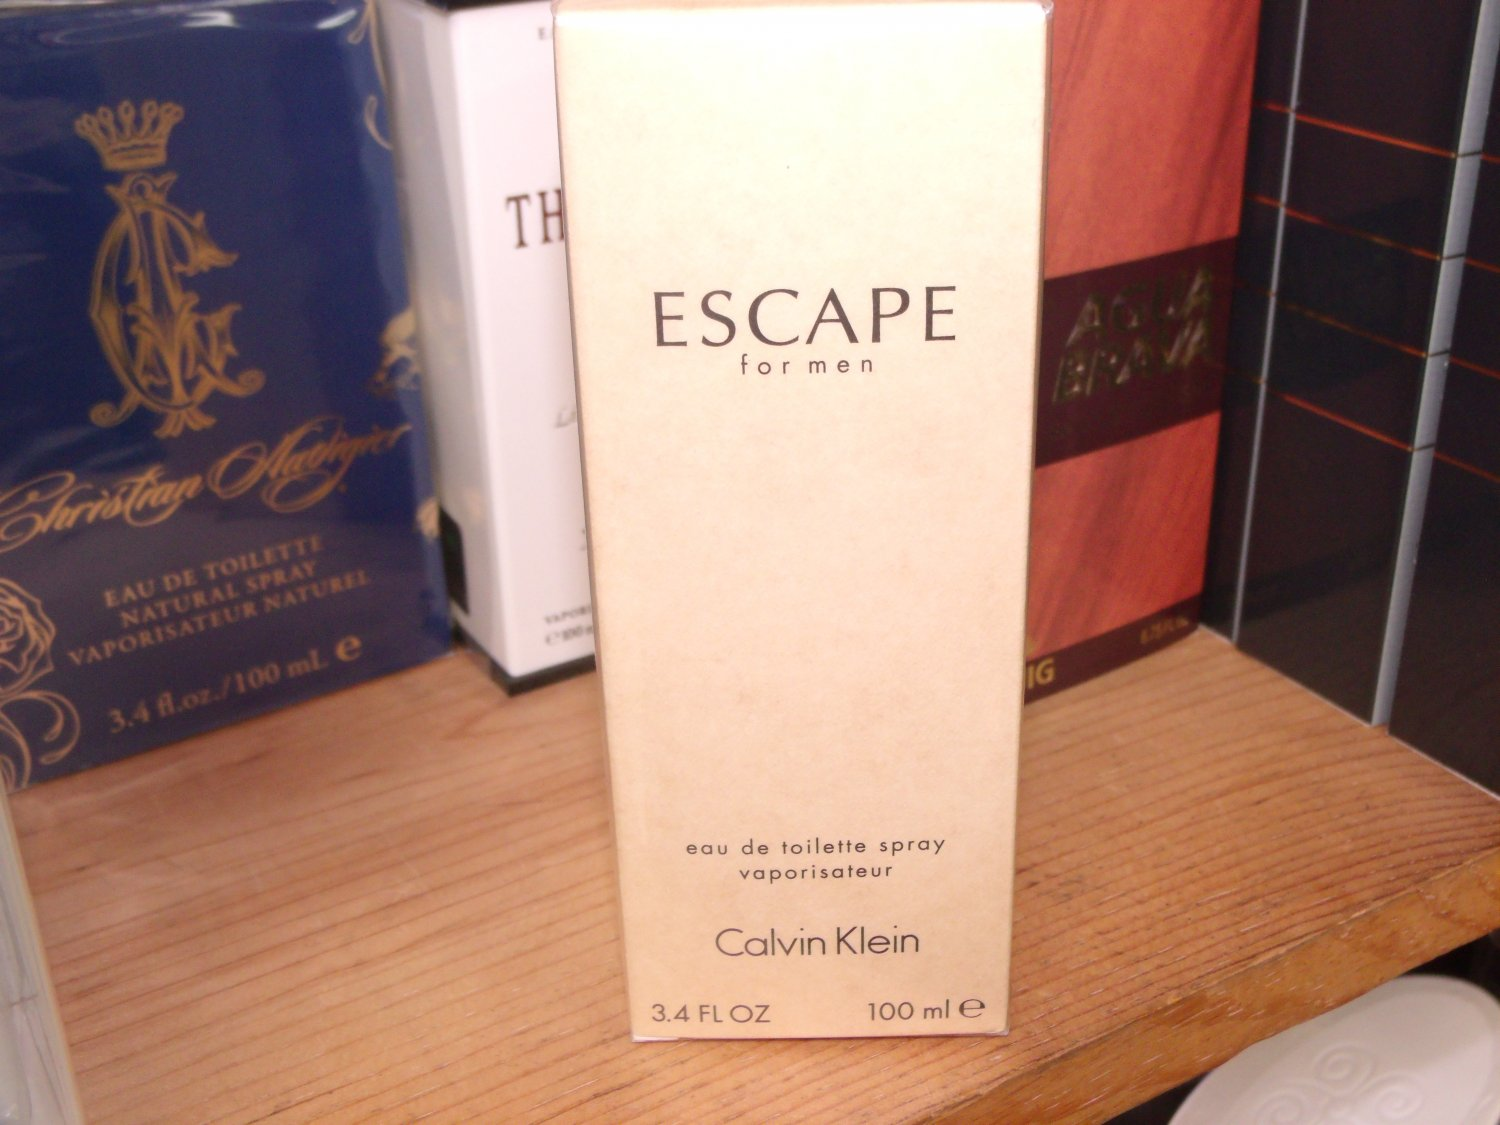 Escape by Calvin Klein 3.4 Fl.Oz EDT 100 ml for men